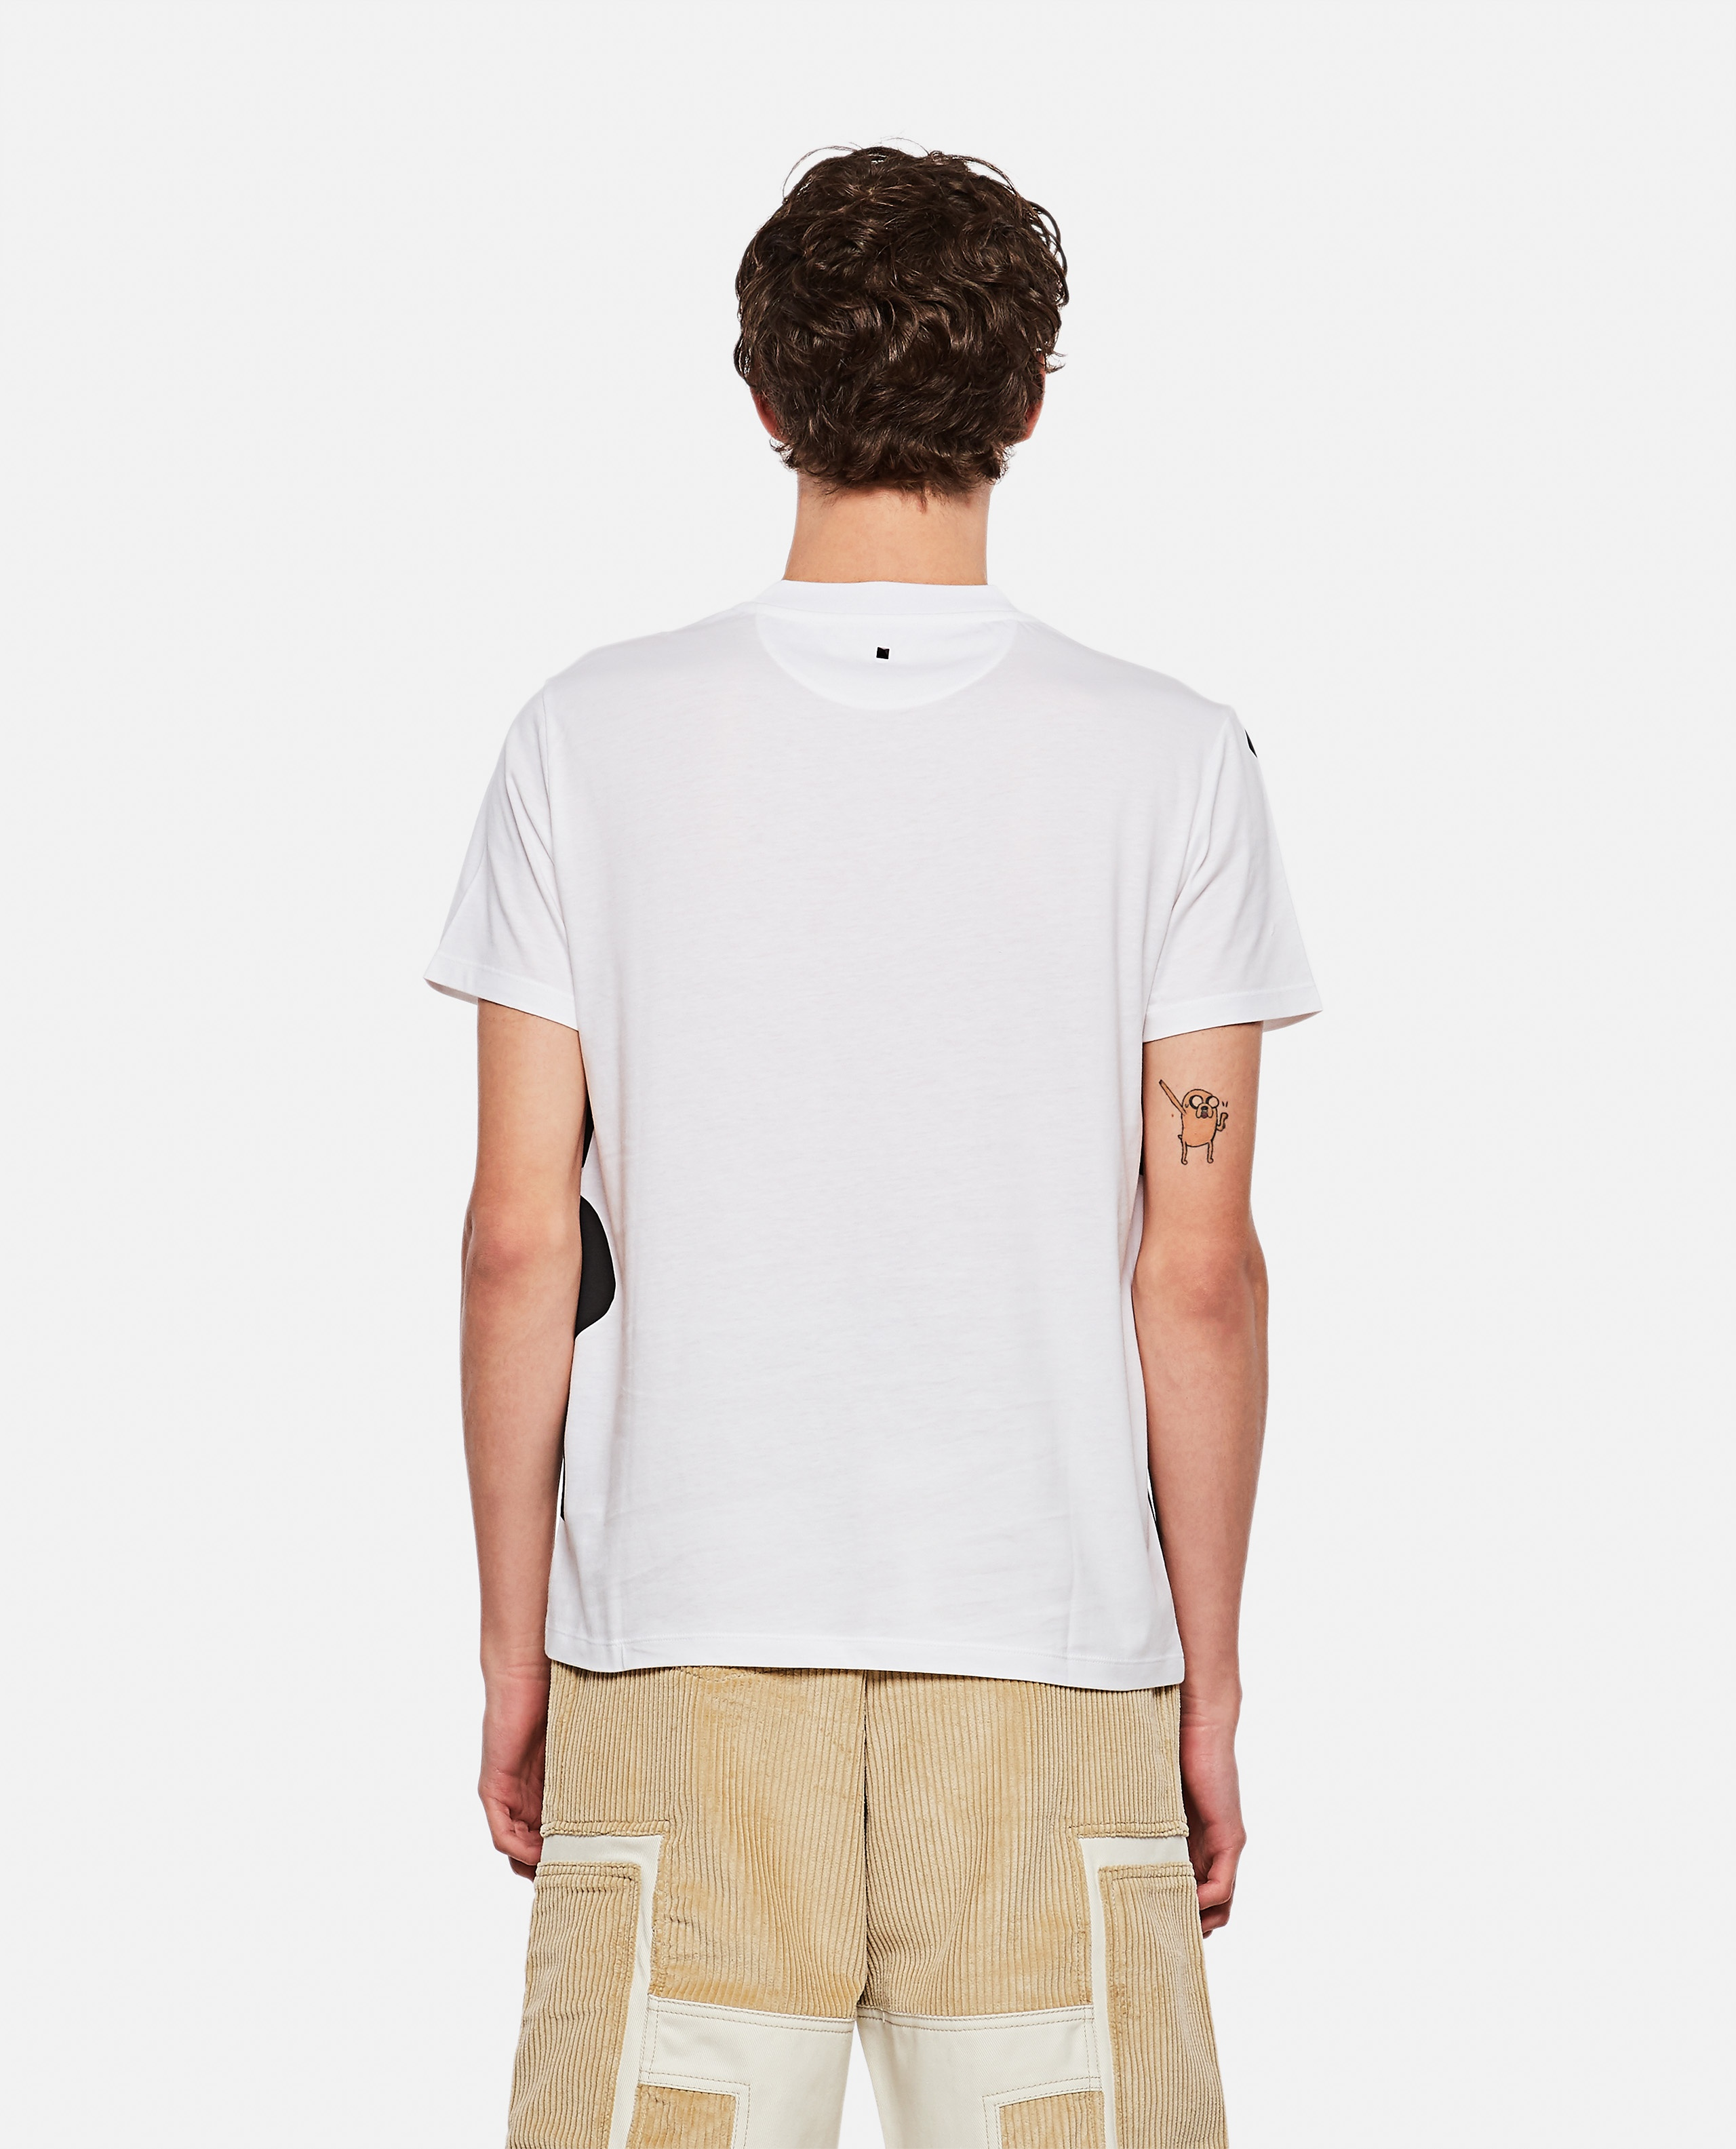 Valentino Garavani BAD LOVER T-shirt Men Valentino 000263990039010 3